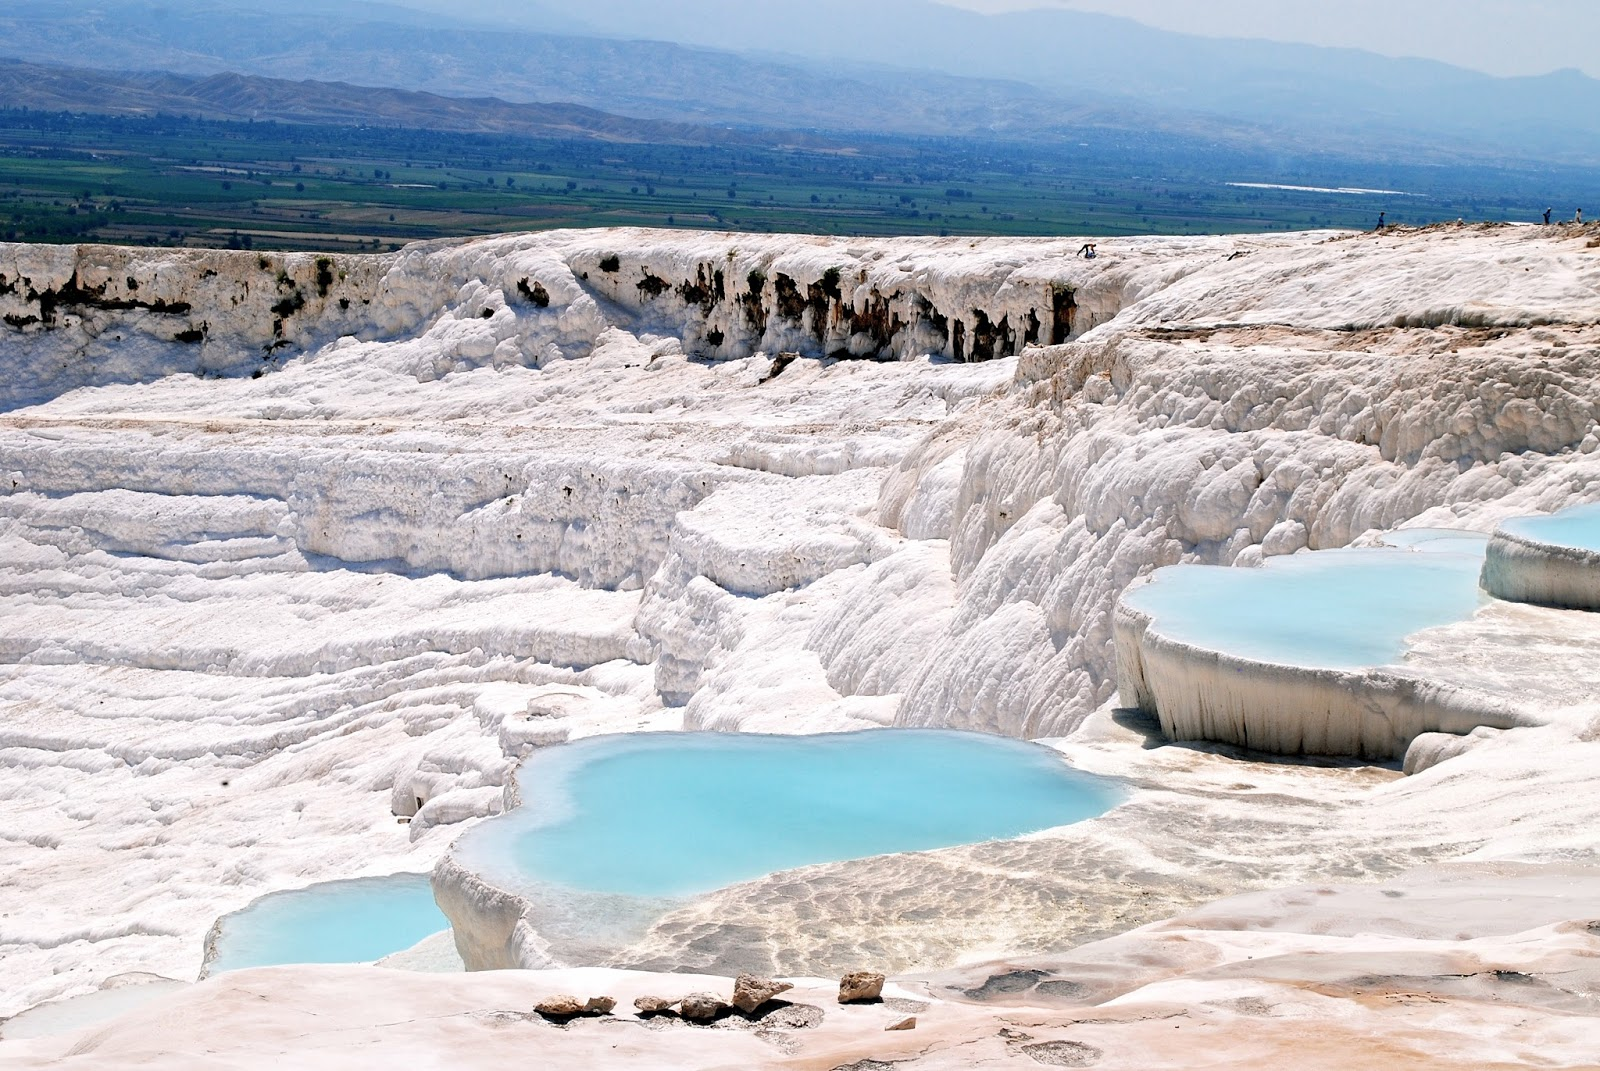 The white terrace pools at Pamukkale in Turkey